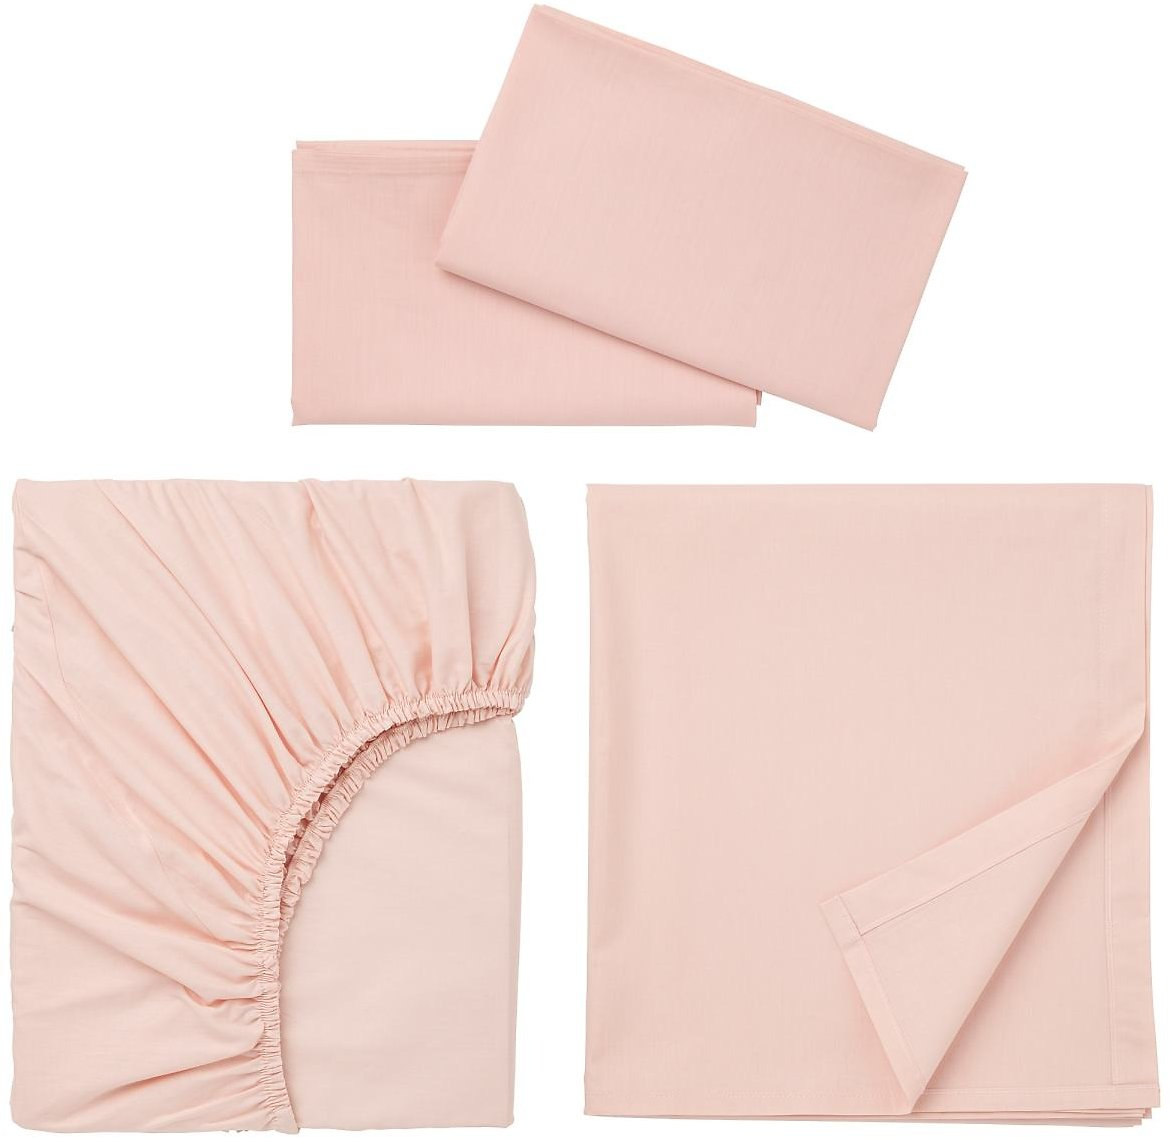 DVALA Sheet Set, Light PinkQueen